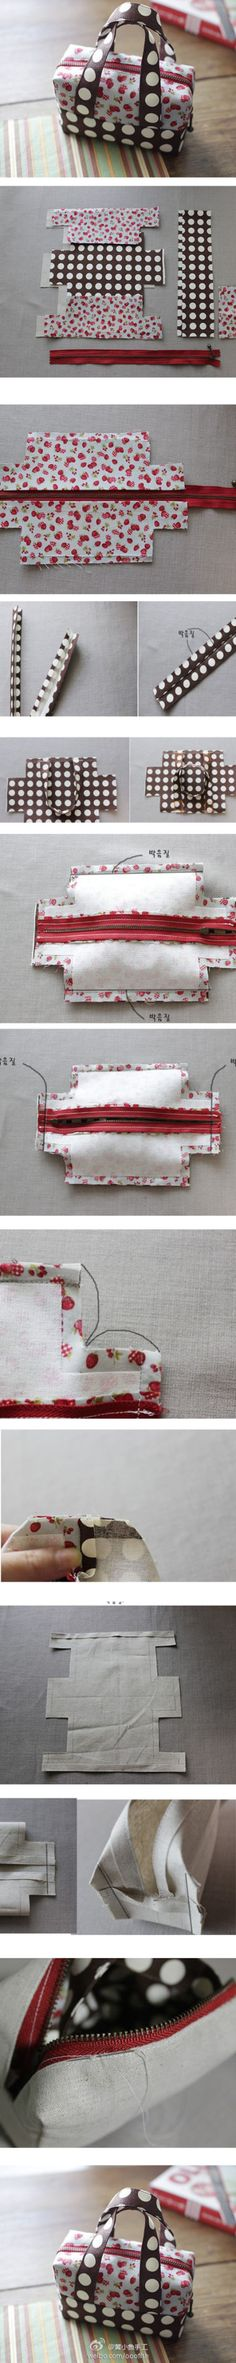 Cute box pouch tutorial - it's not in English, but the pictures are done well enough that it's doable.